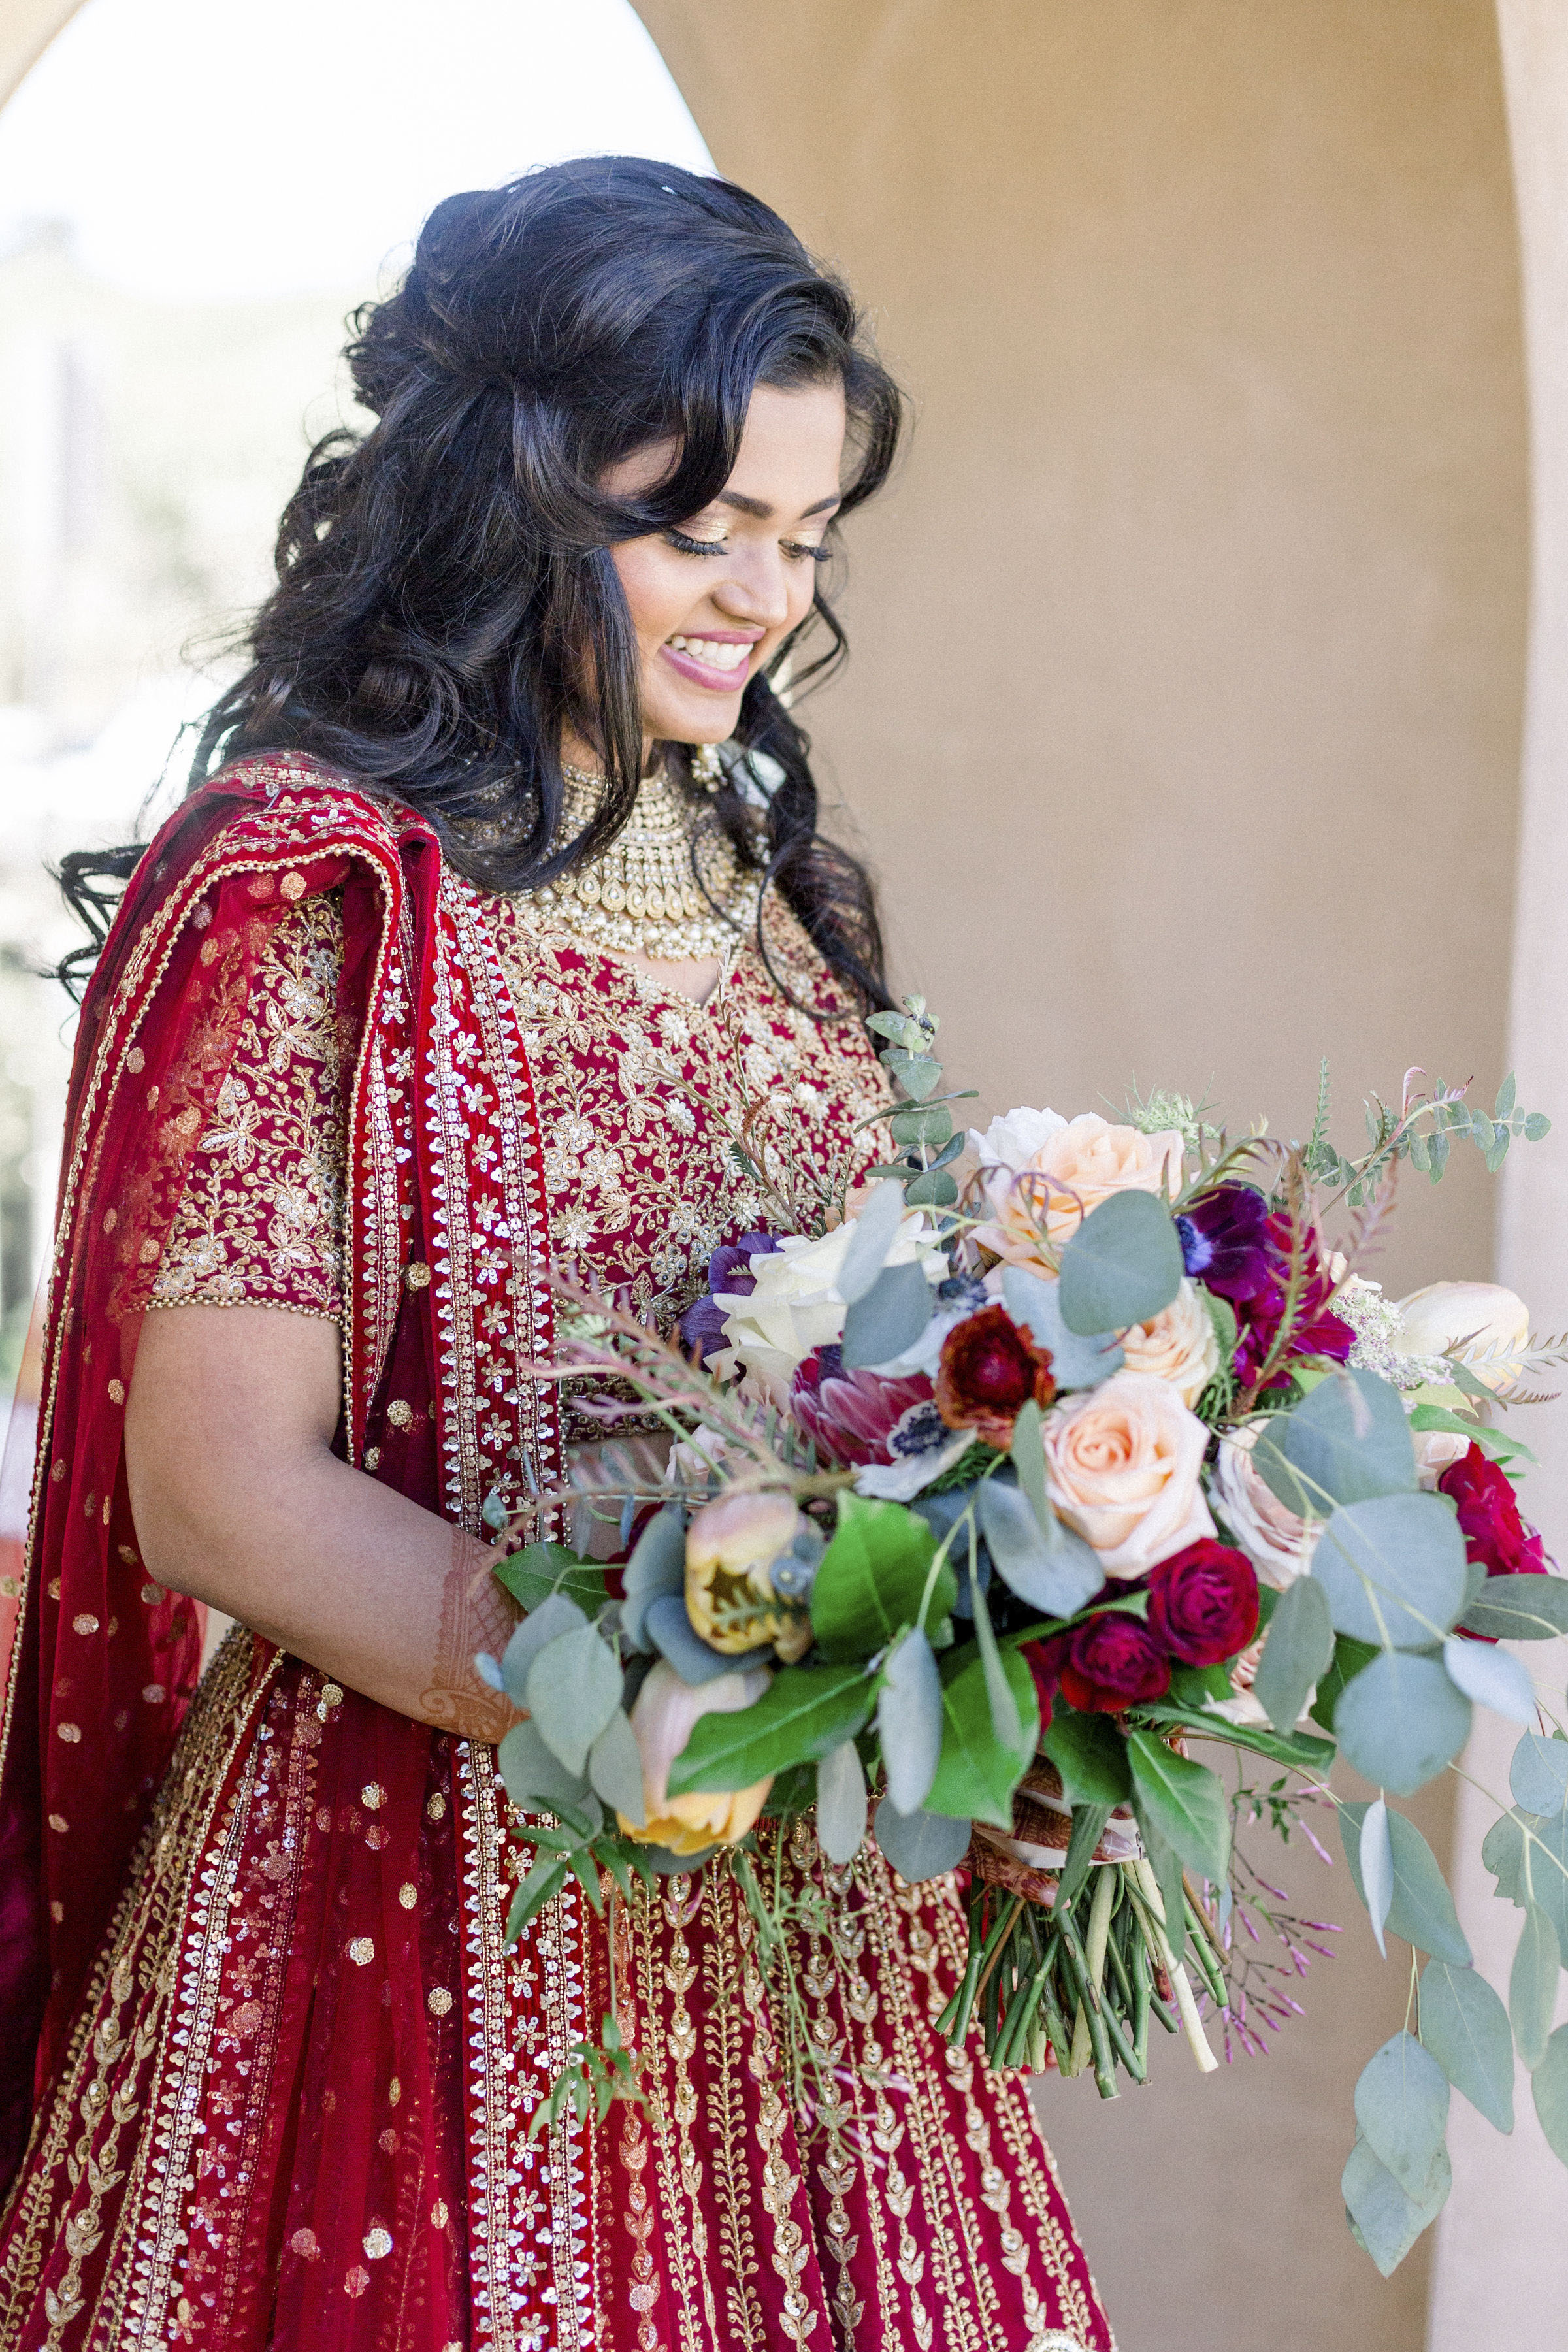 Domenica Beauty _ Hair and Makeup Artist _Wedding _ Temecula, CA _ Pratishtha and Christopher _ 14.JPG